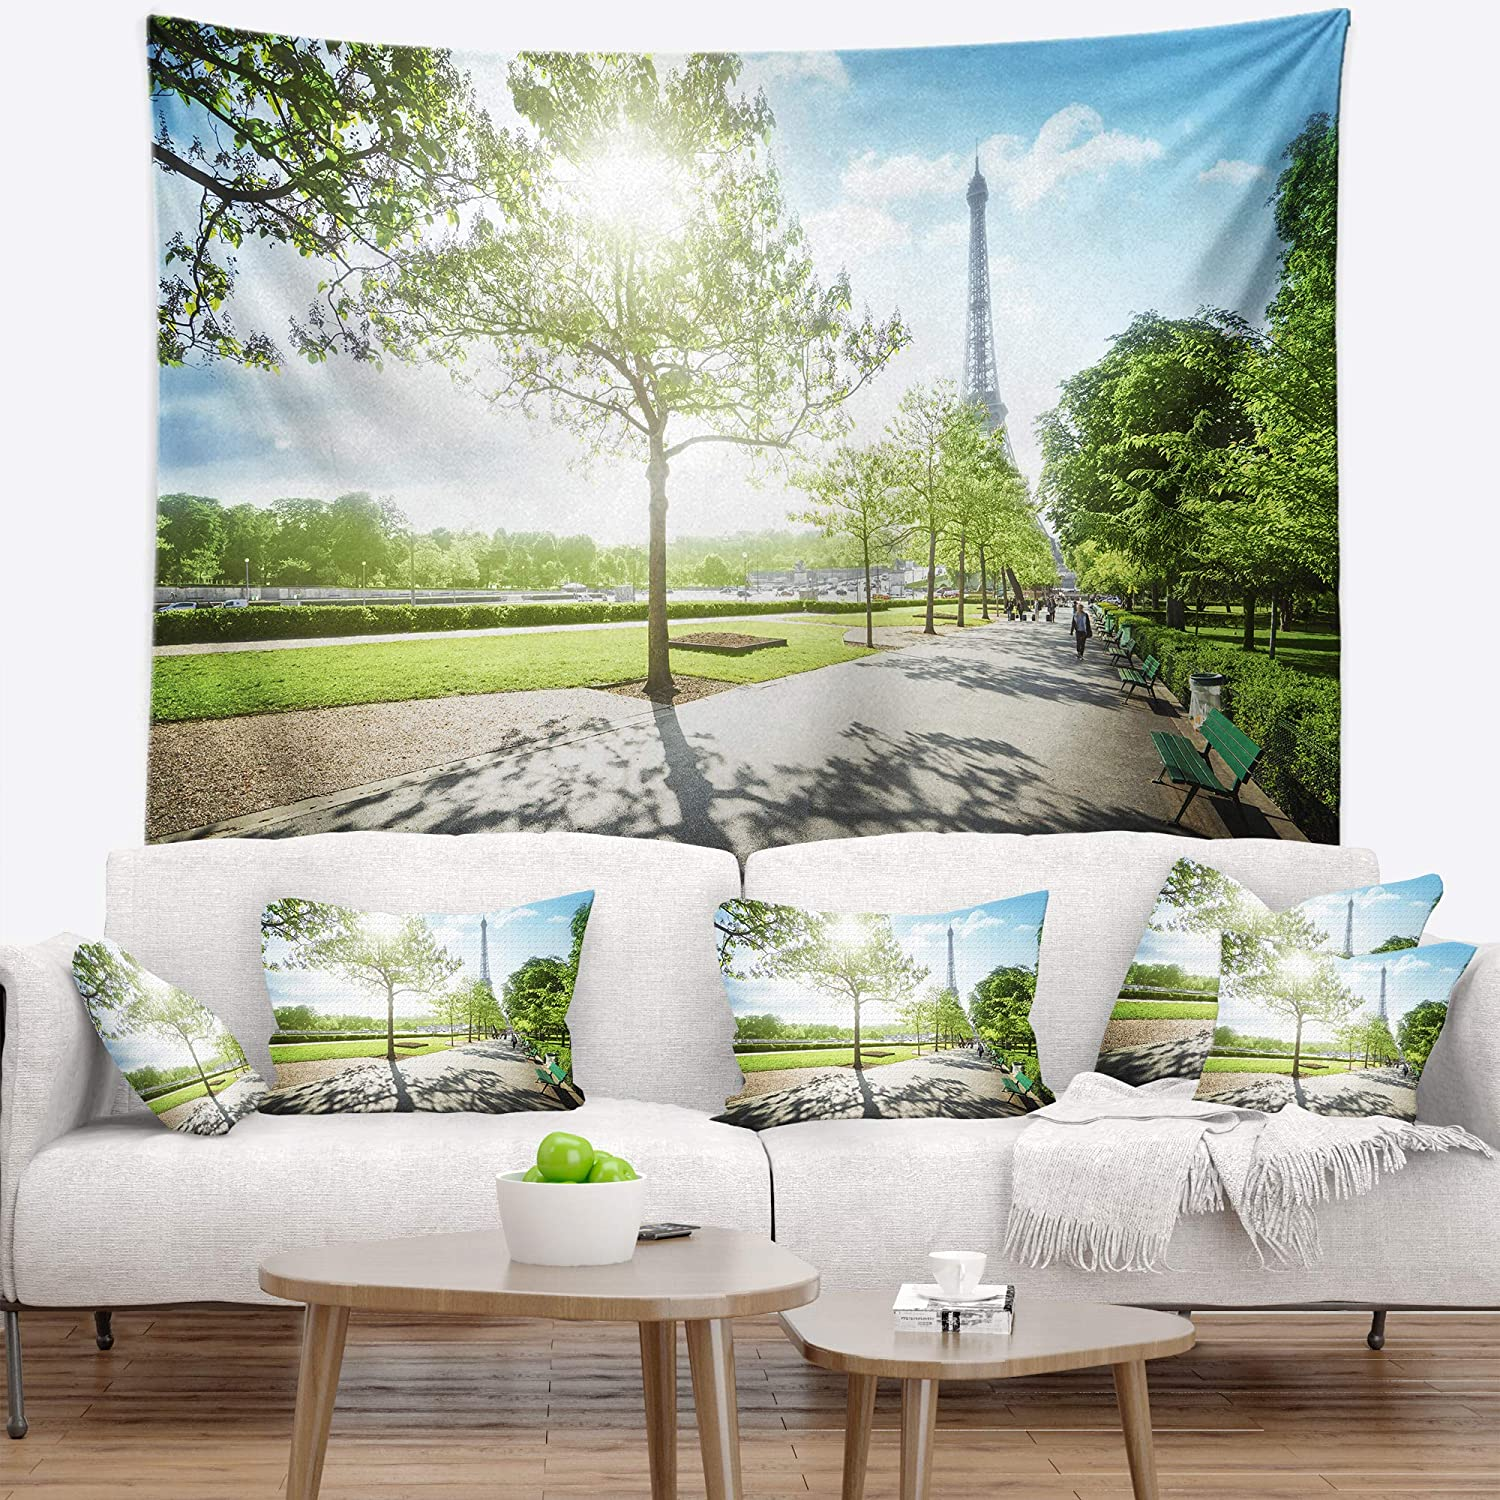 x 32 in 39 in Designart TAP14884-39-32  Paris Eiffel Towerat Sunny Morning Landscape Blanket D/écor Art for Home and Office Wall Tapestry Medium Created on Lightweight Polyester Fabric